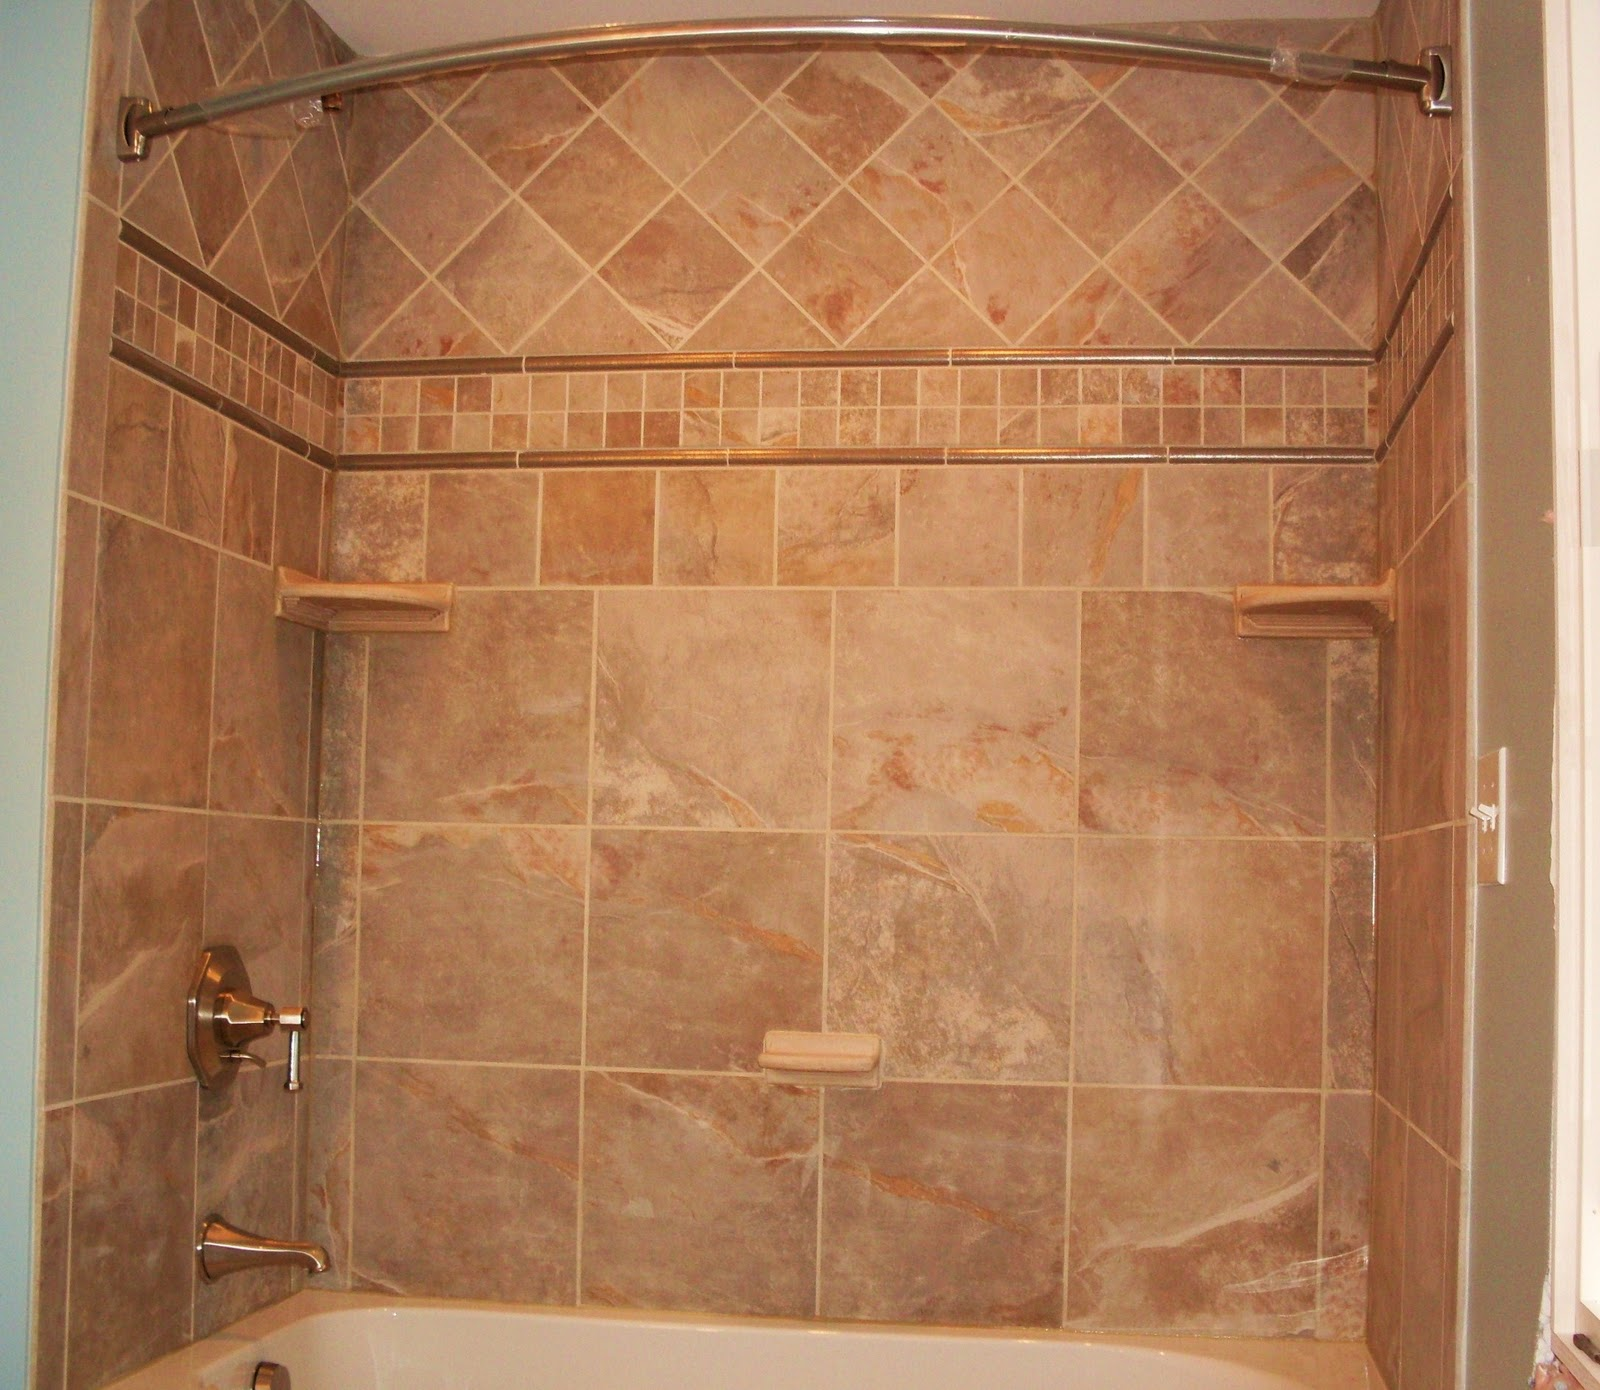 Kitchens baths by d 39 zyne june 2010 for Tile shower surround